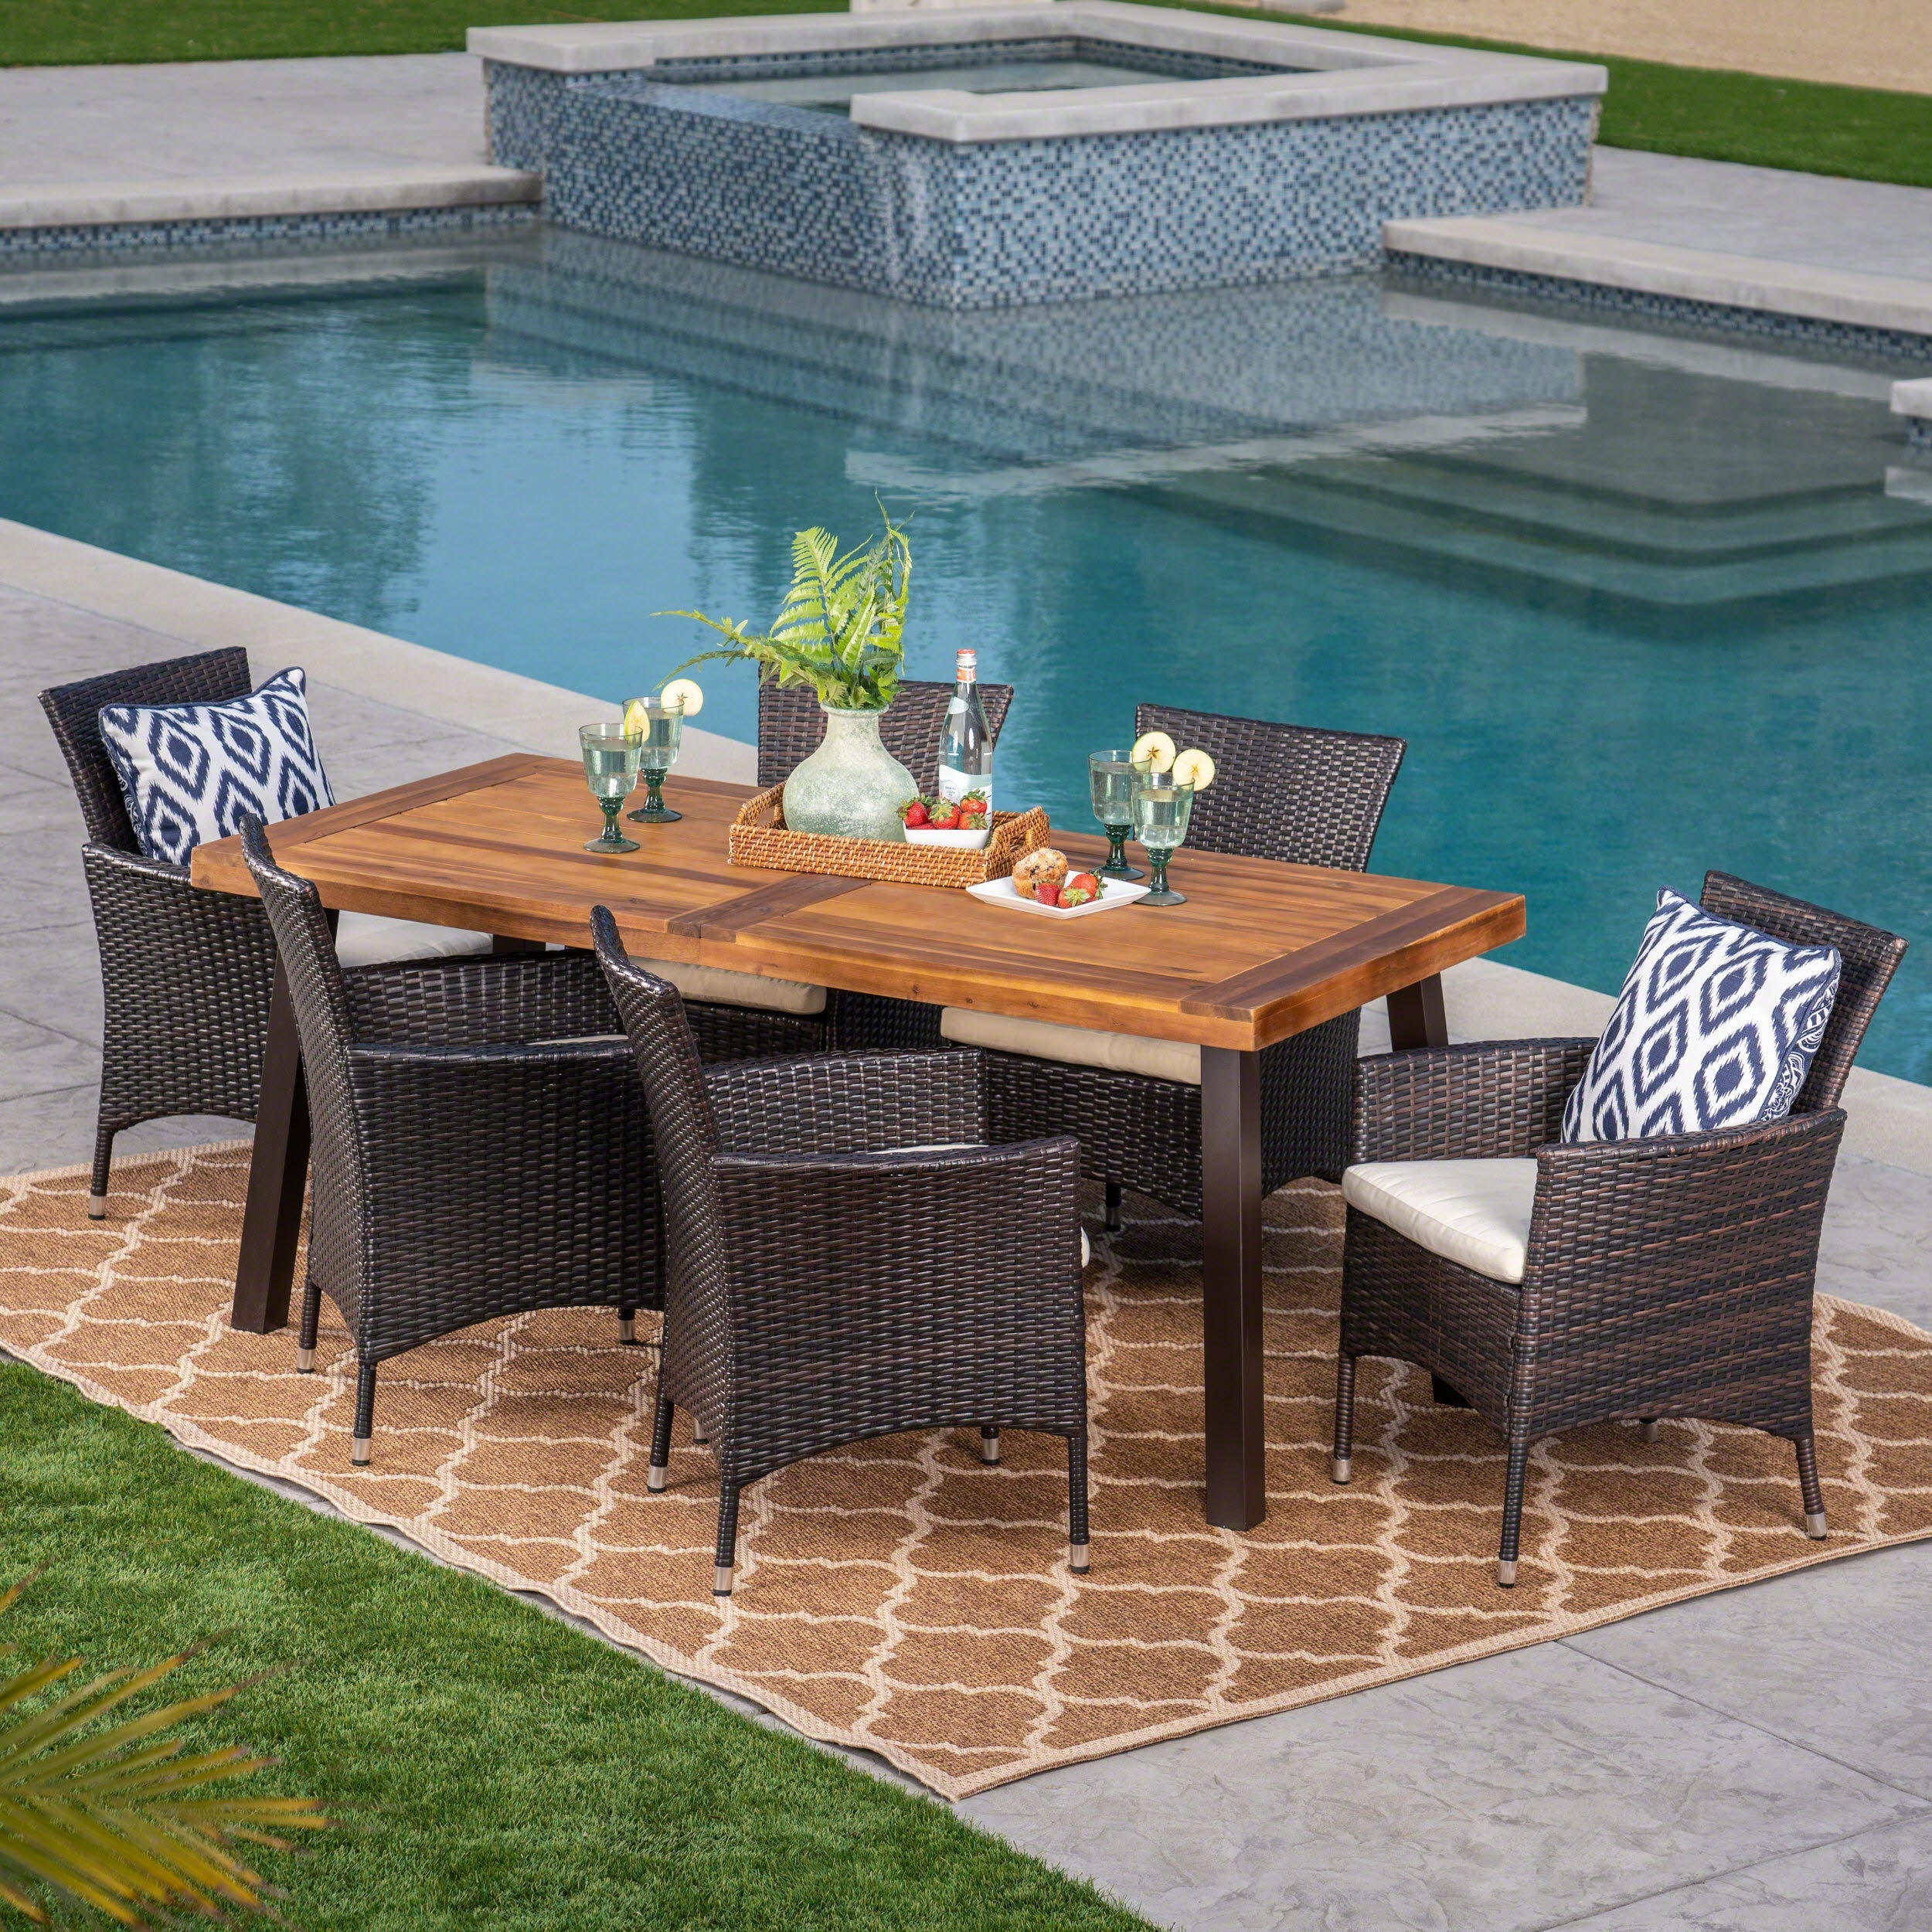 Tustin Outdoor 7 Piece Acacia Wicker Dining Set By Christopher Knight Home On Sale Overstock 21079715